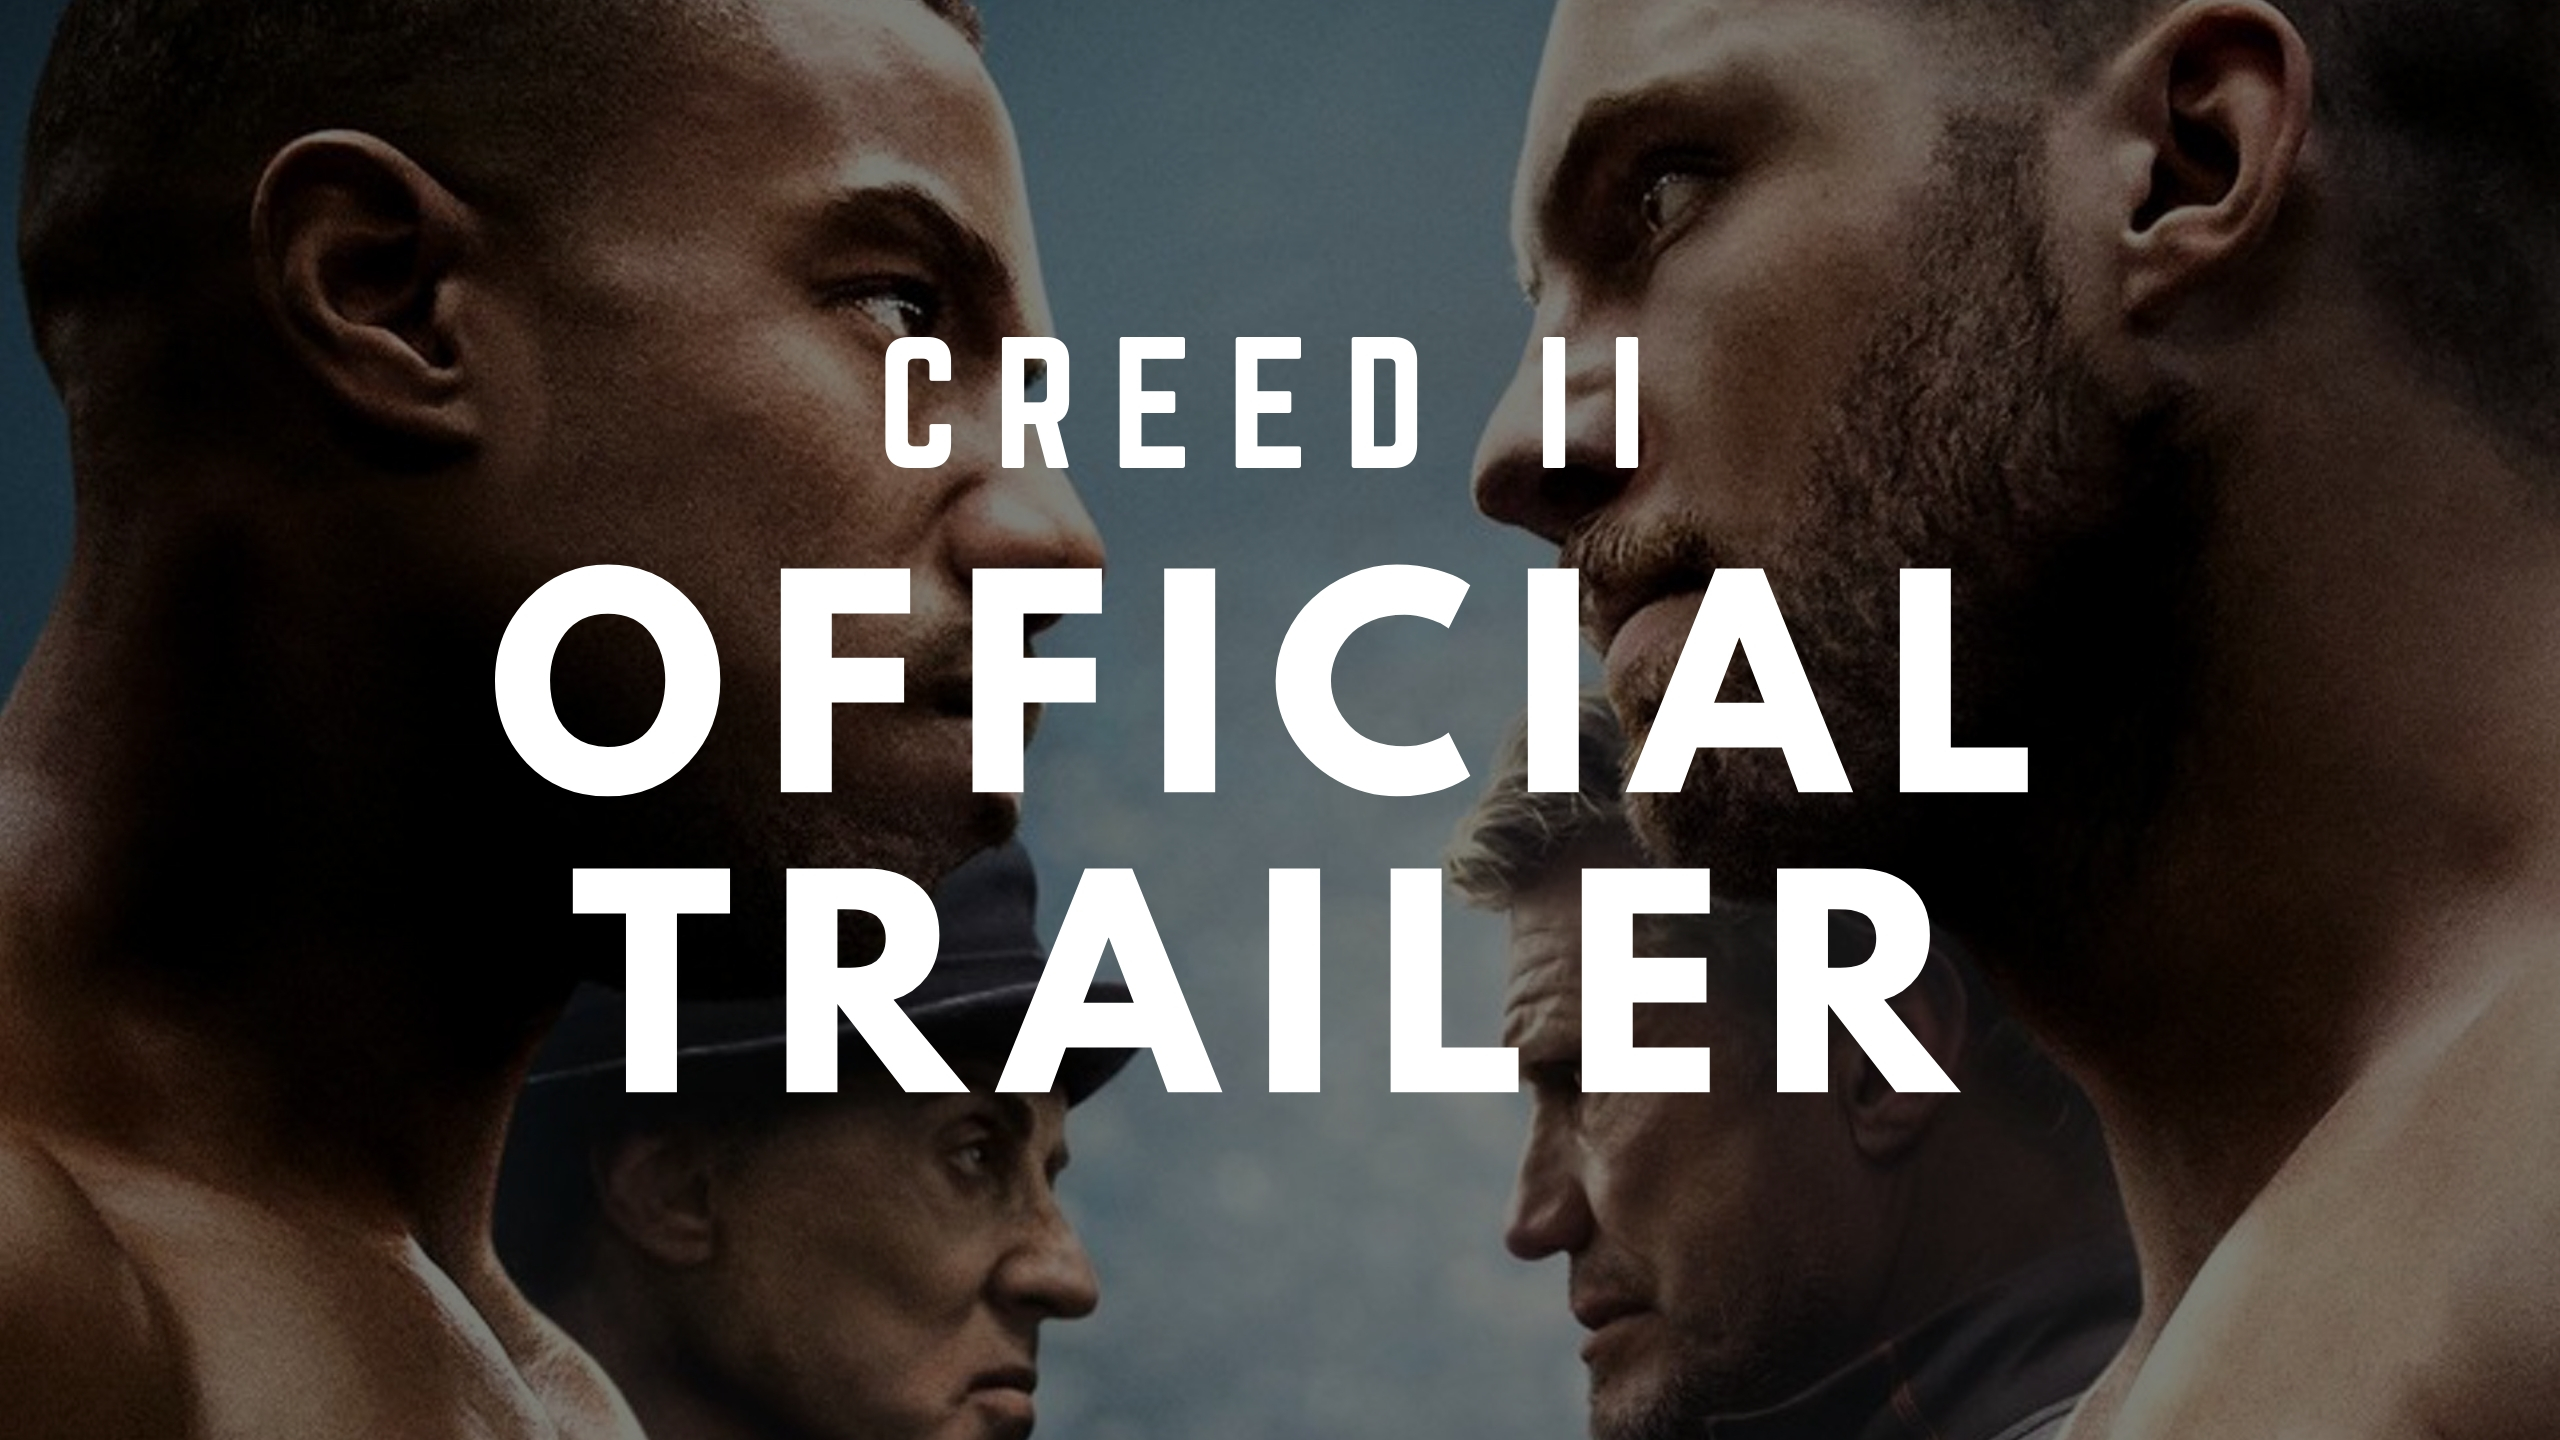 CREED II | Official Trailer Released And We Are Hyped!